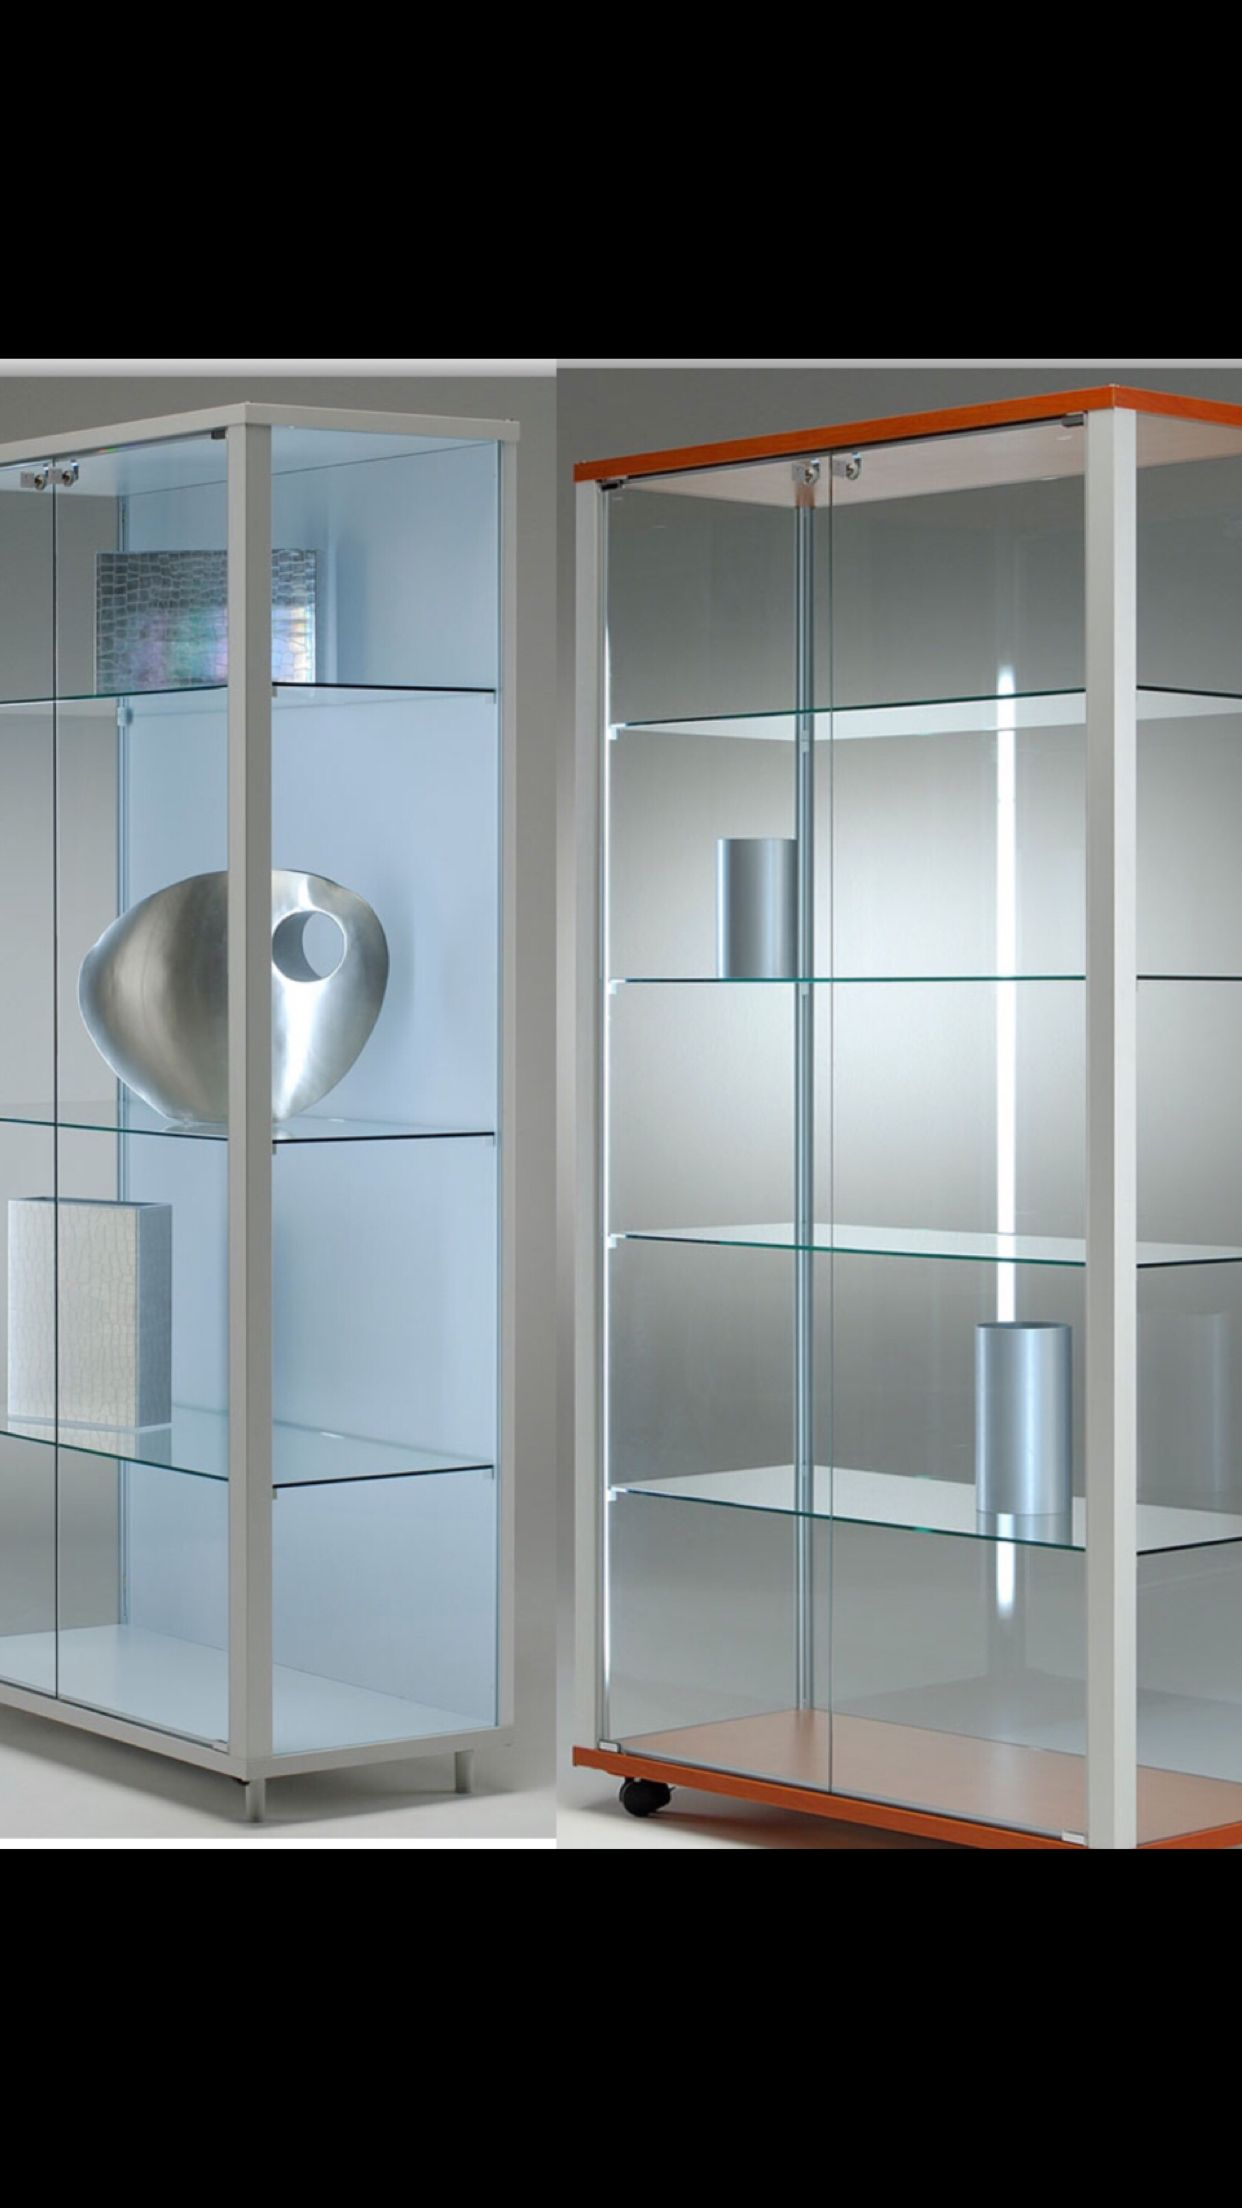 Glass Cases Trophy Cabinet Lockable With Side Lights All Made From Toughened Glass